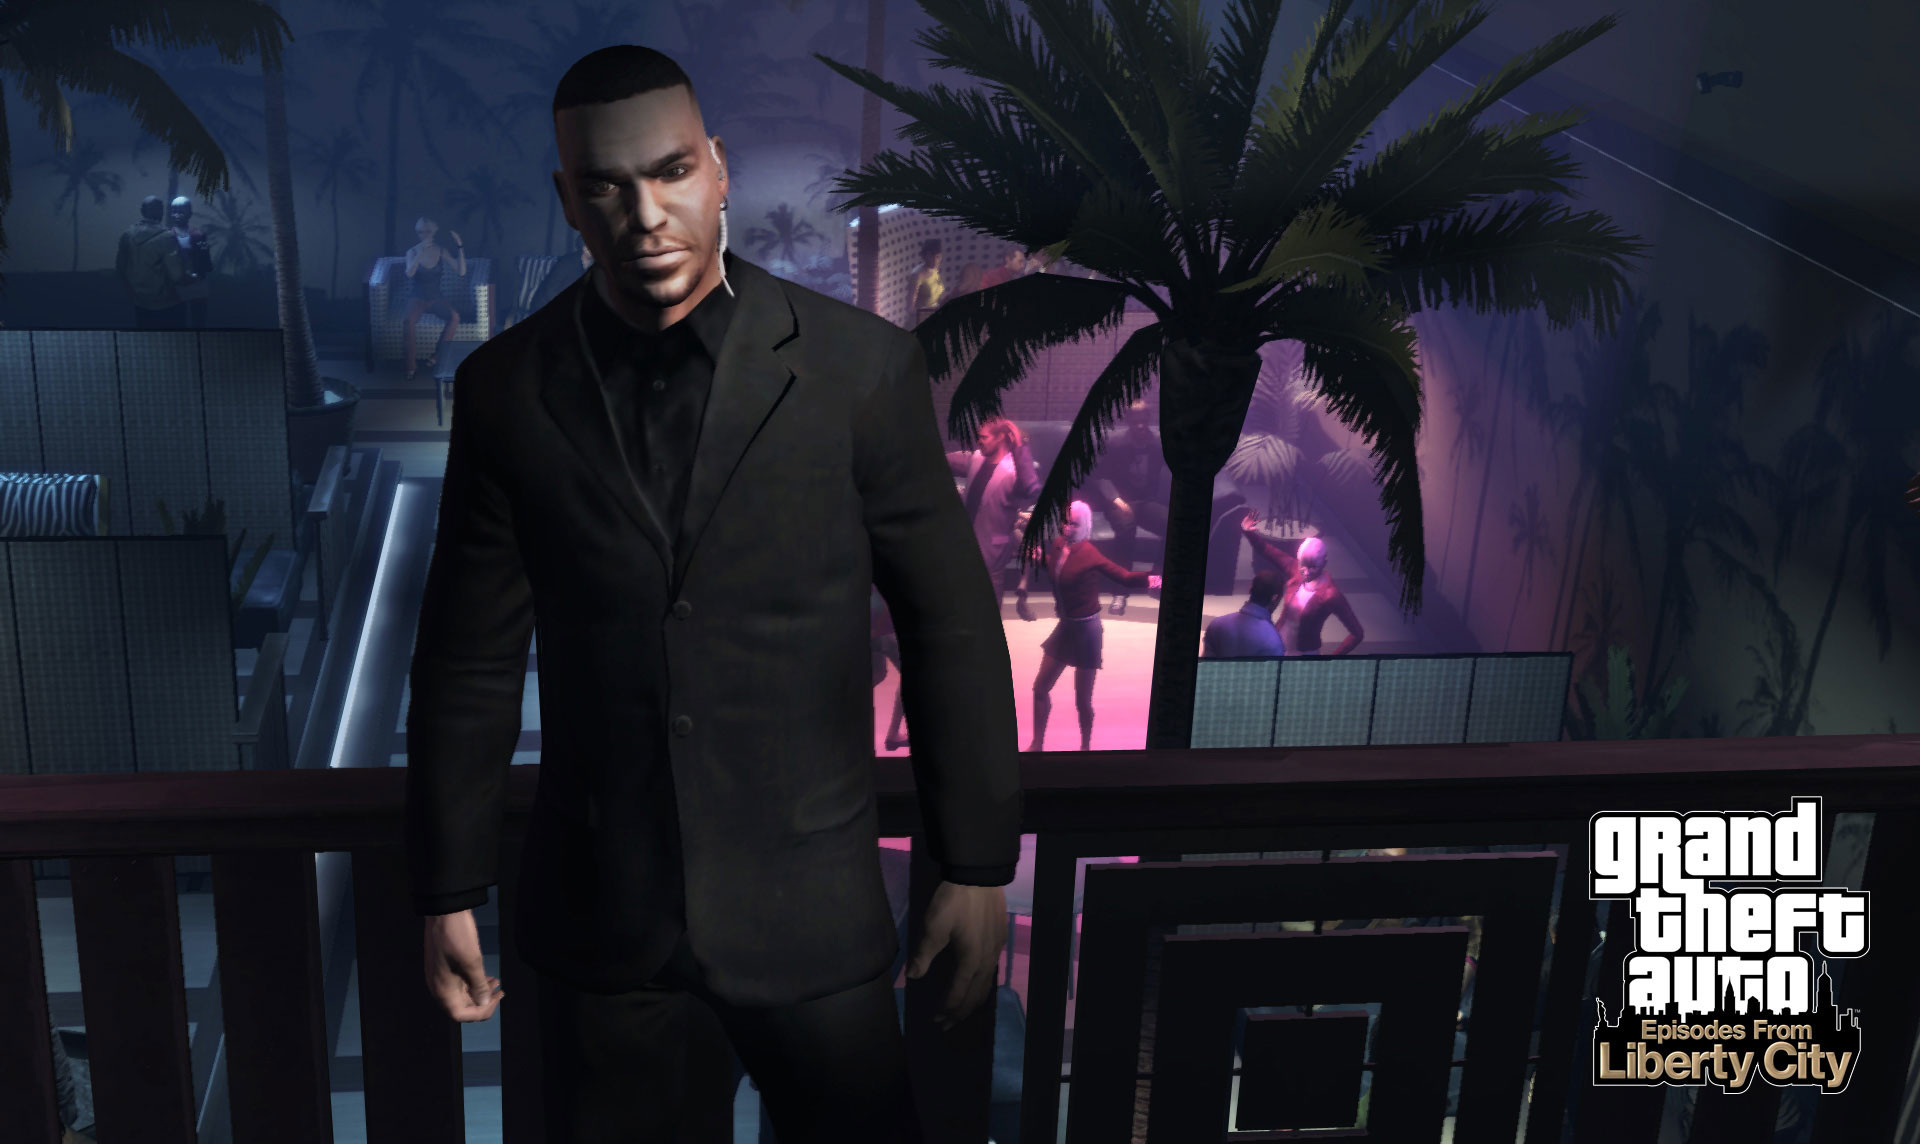 GTA4 Wallpapers (71+ pictures)